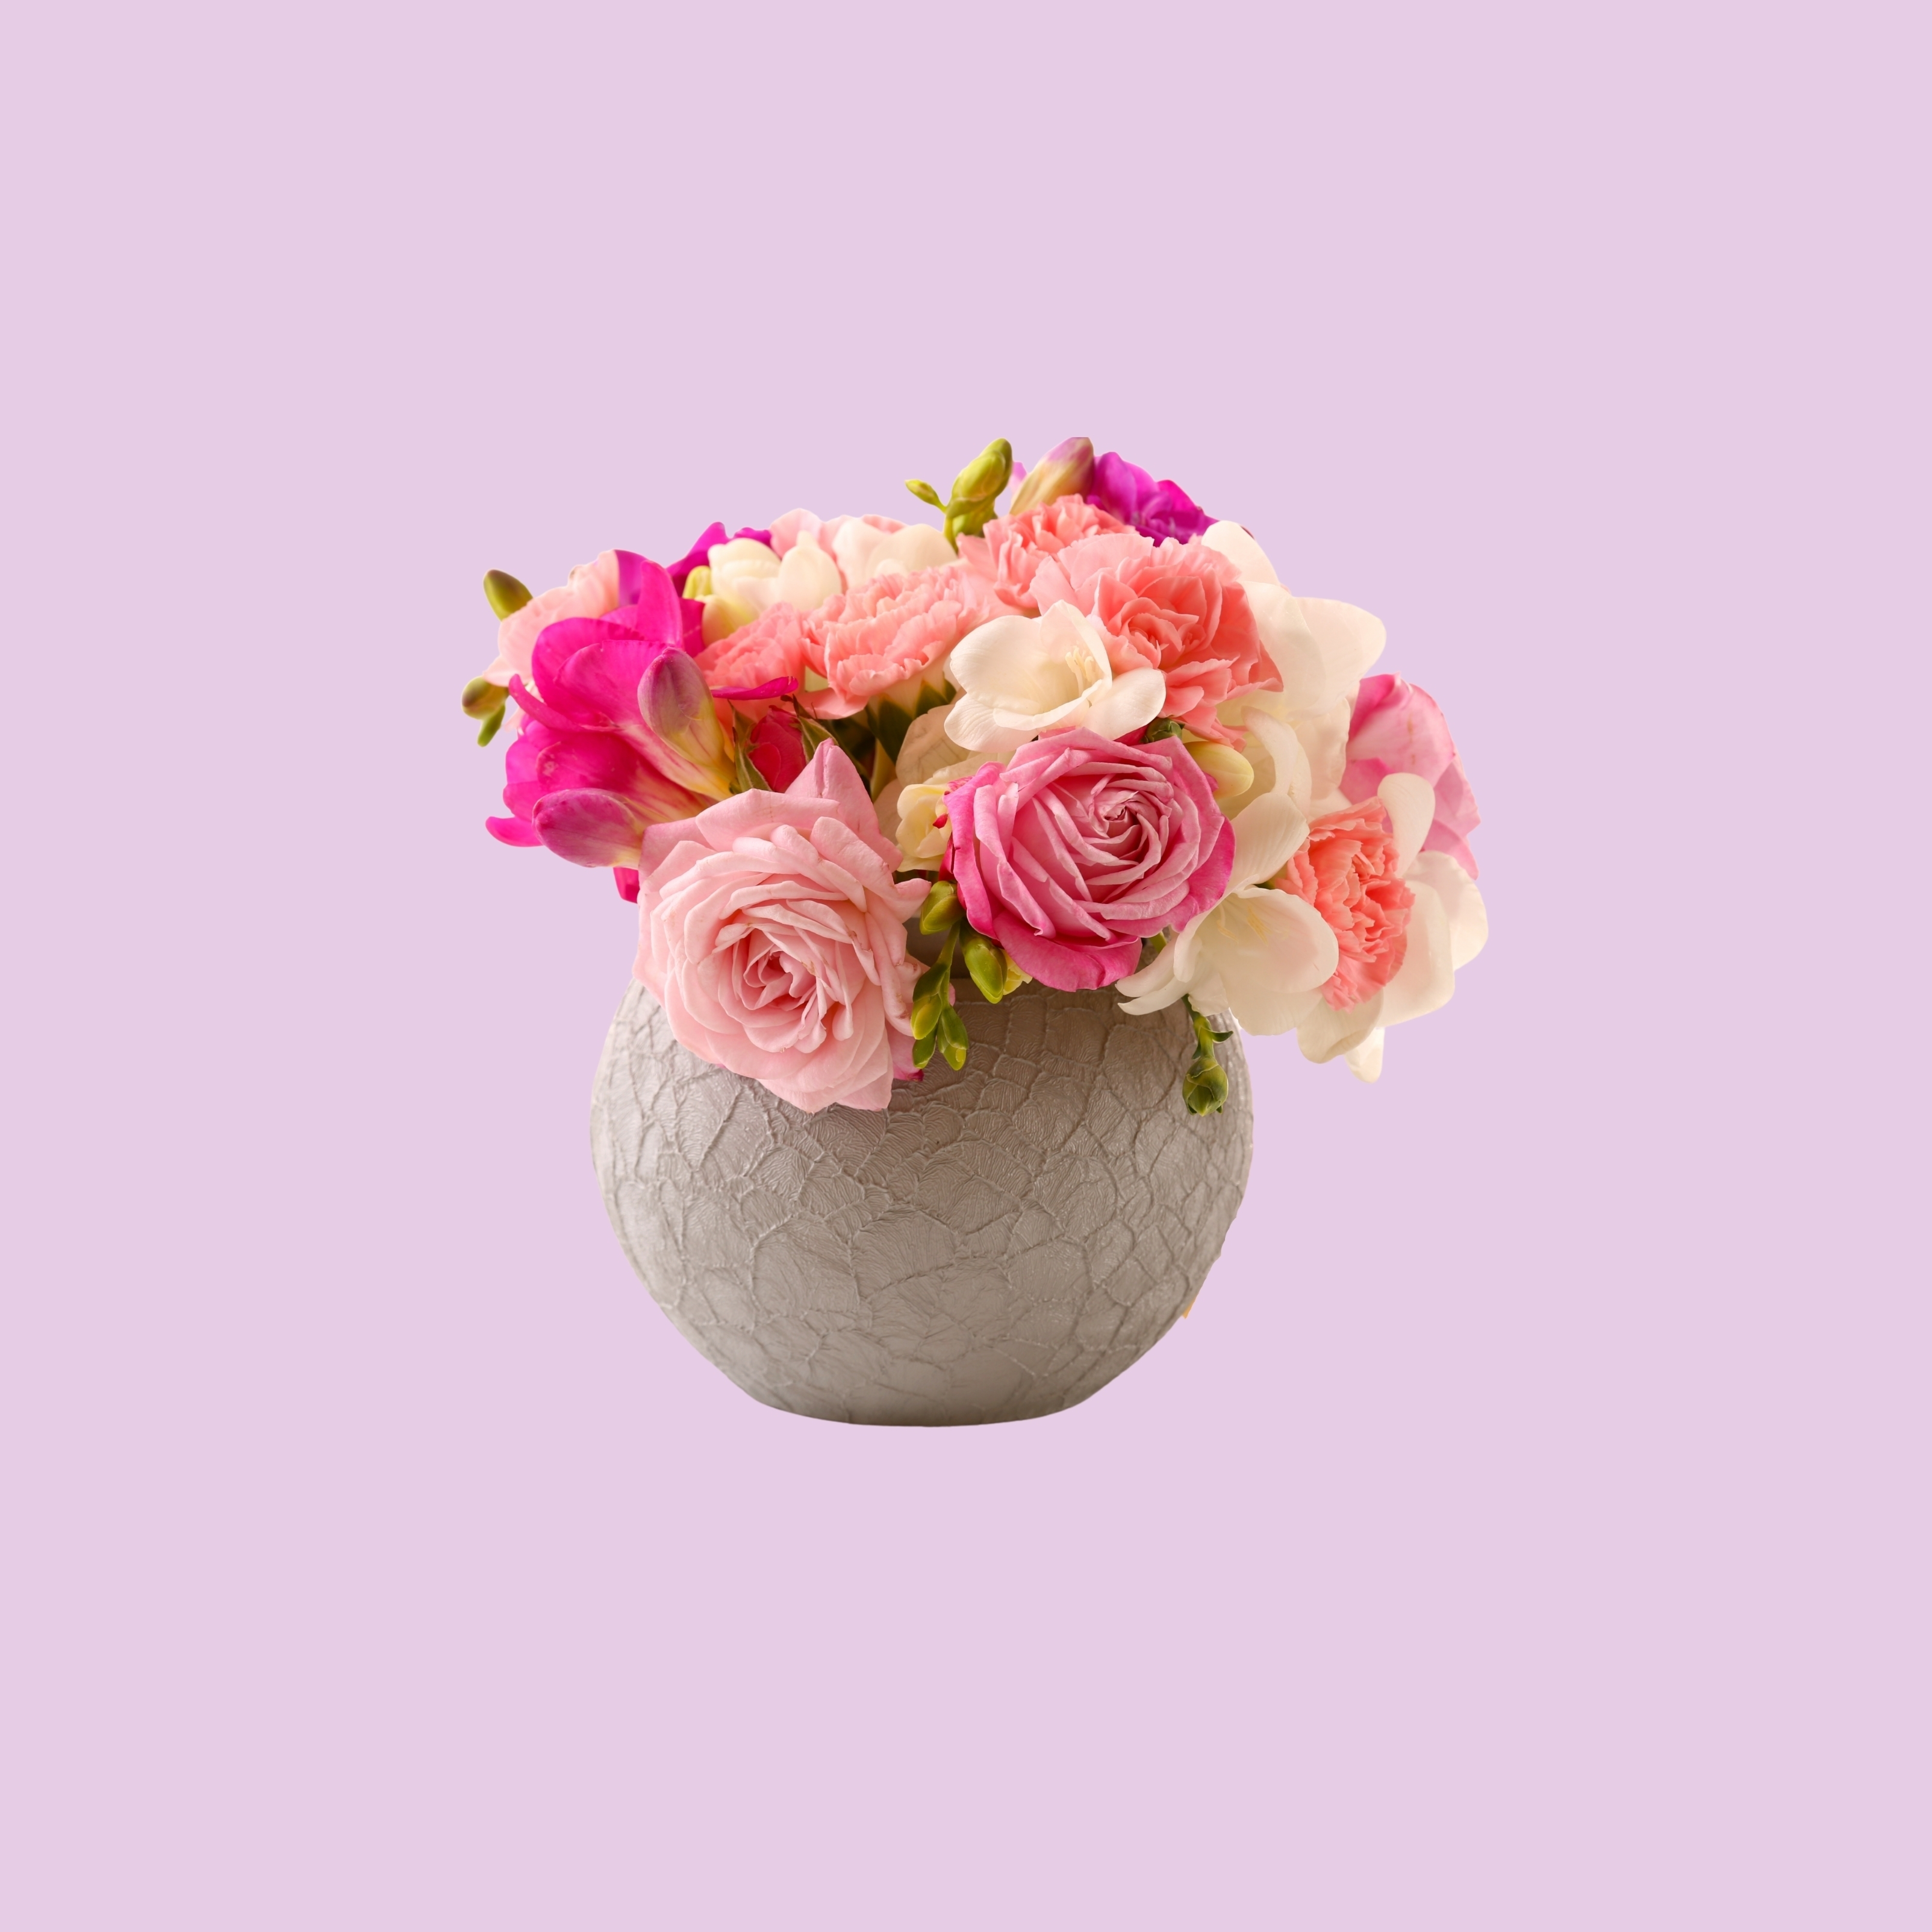 Vase Pink Roses Floral Pot iPad Wallpaper